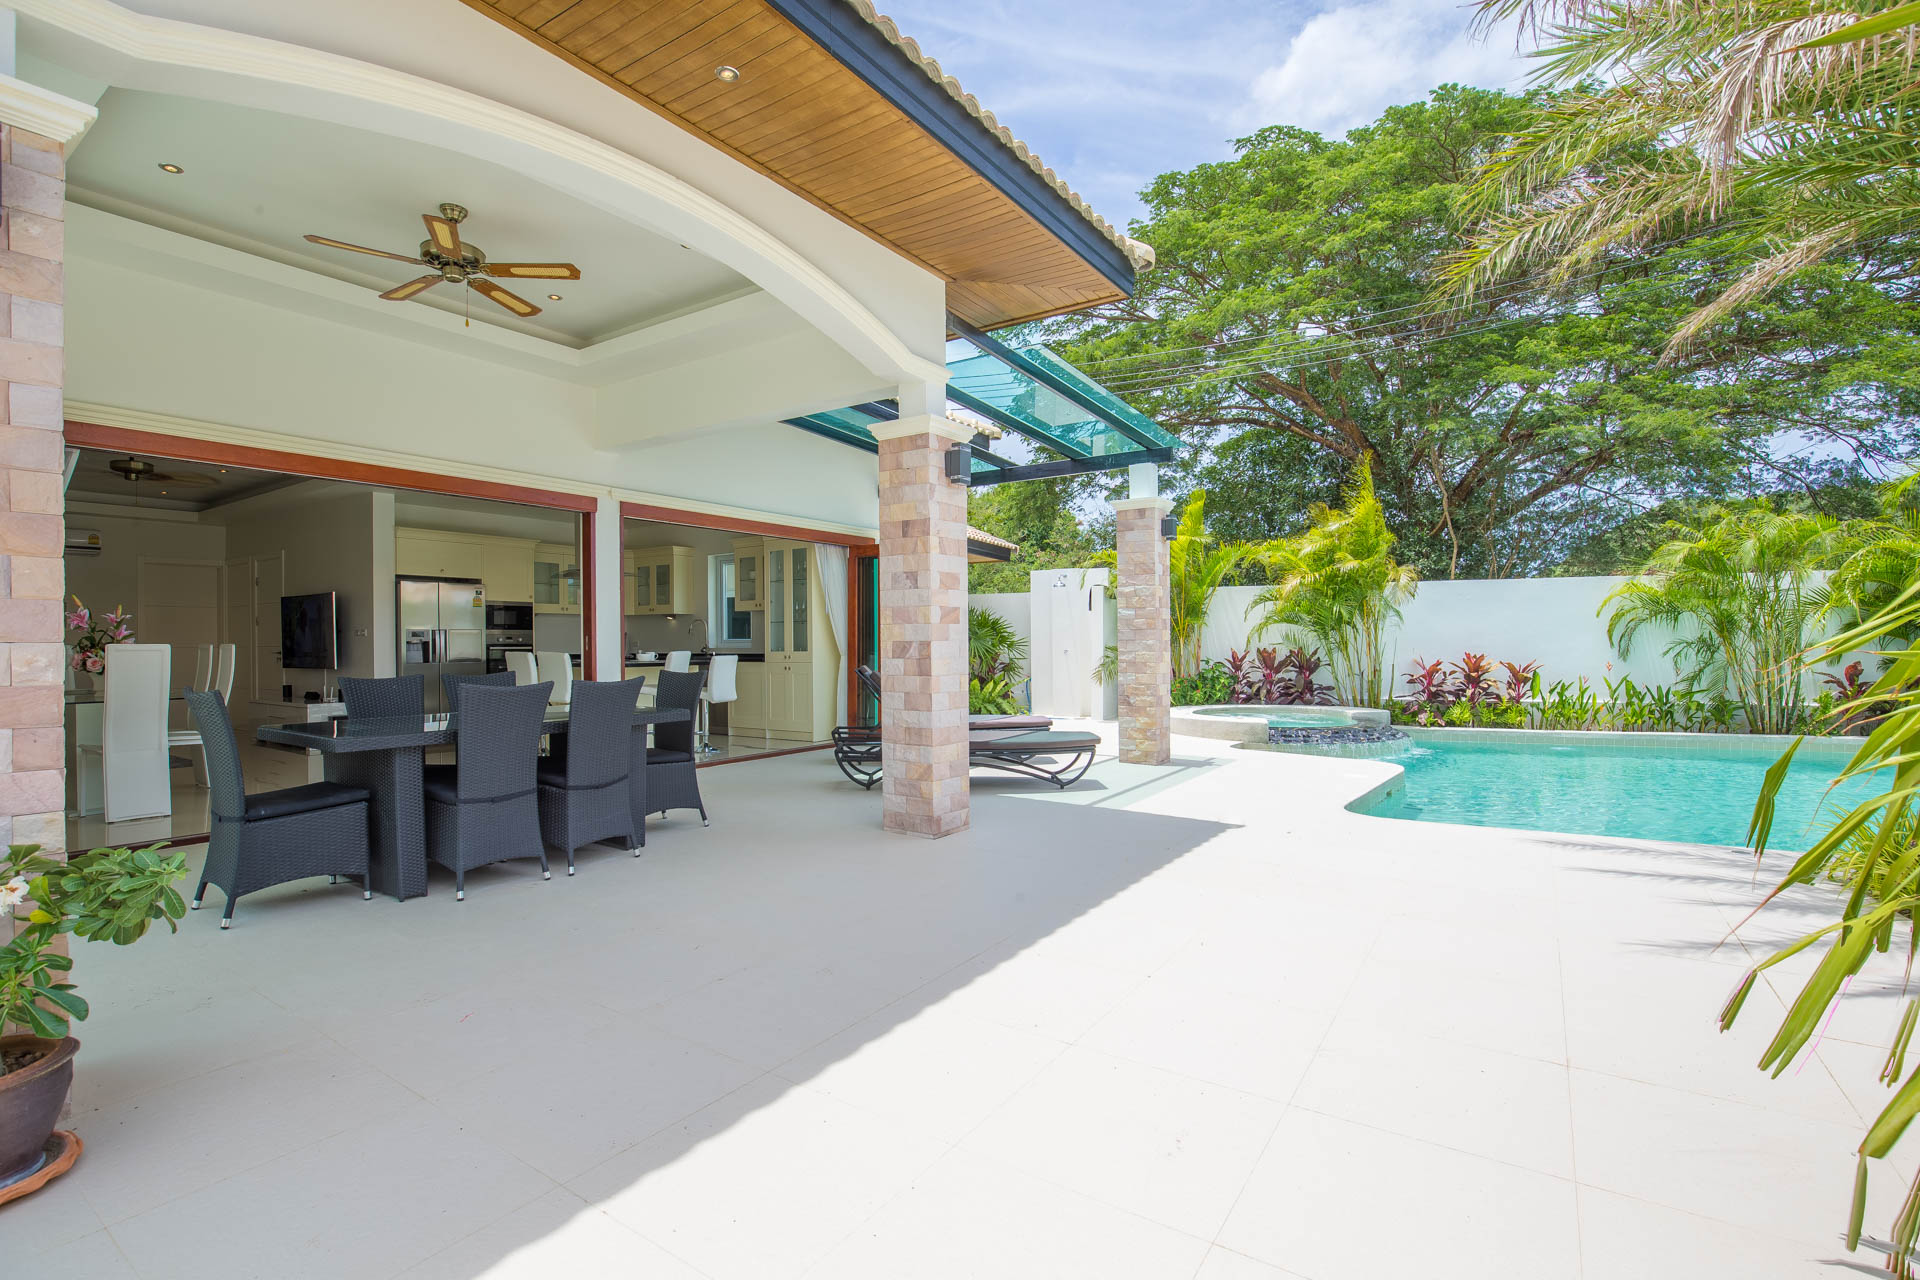 Orchid Paradise Homes, price 5490000 baht, 3 bedrooms